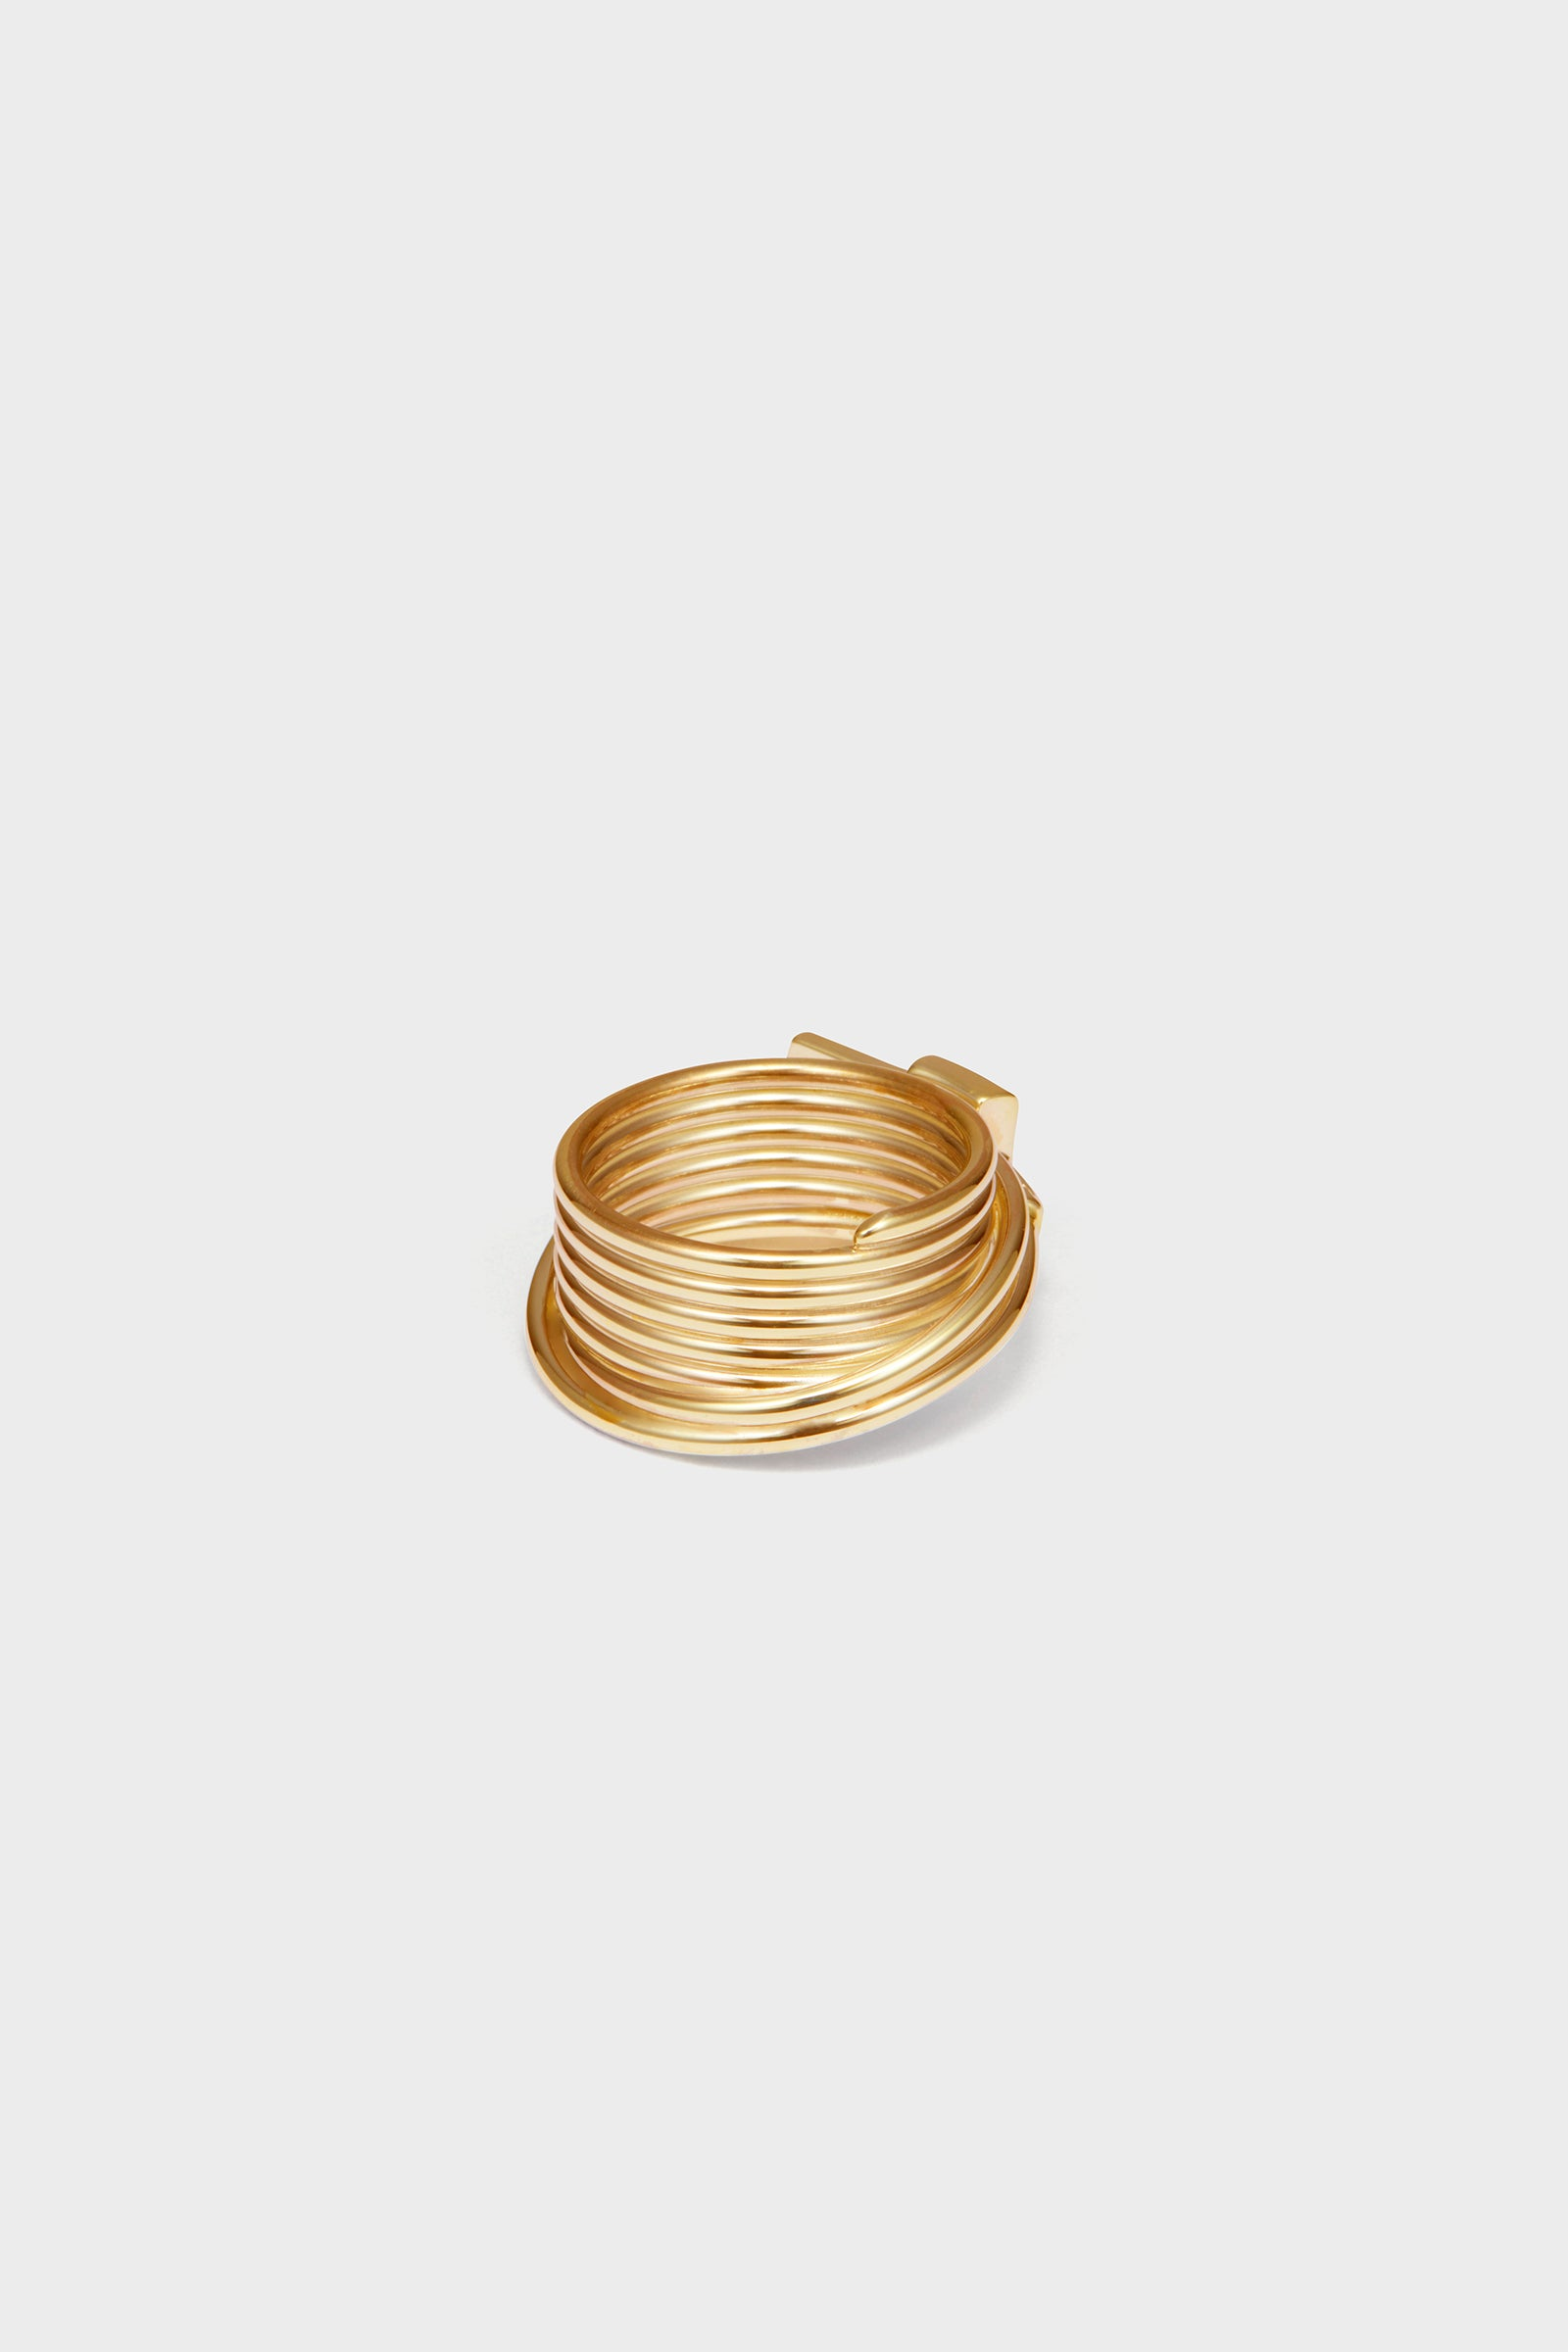 LIGHTNING RING (GOLD)